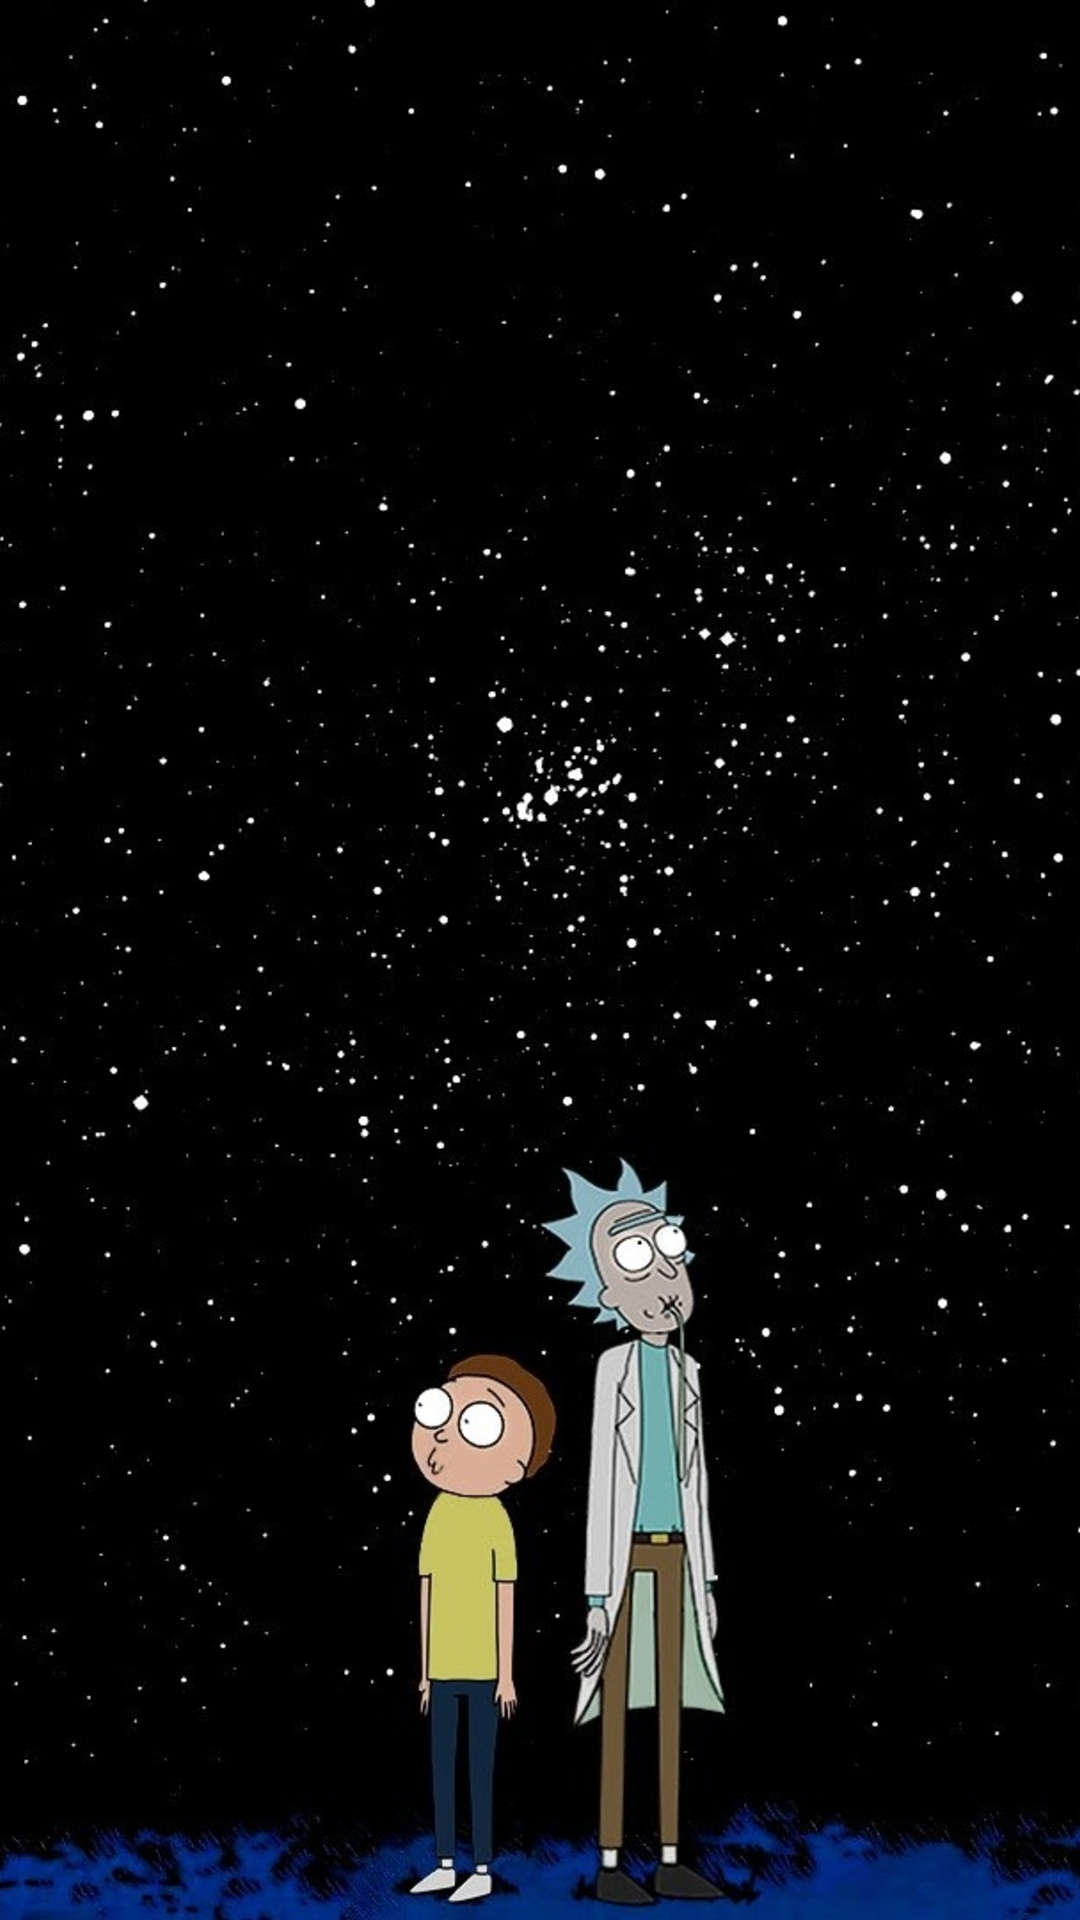 1080x1920 Rick And Morty Hd Iphone 7,6s,6 Plus, Pixel xl ...